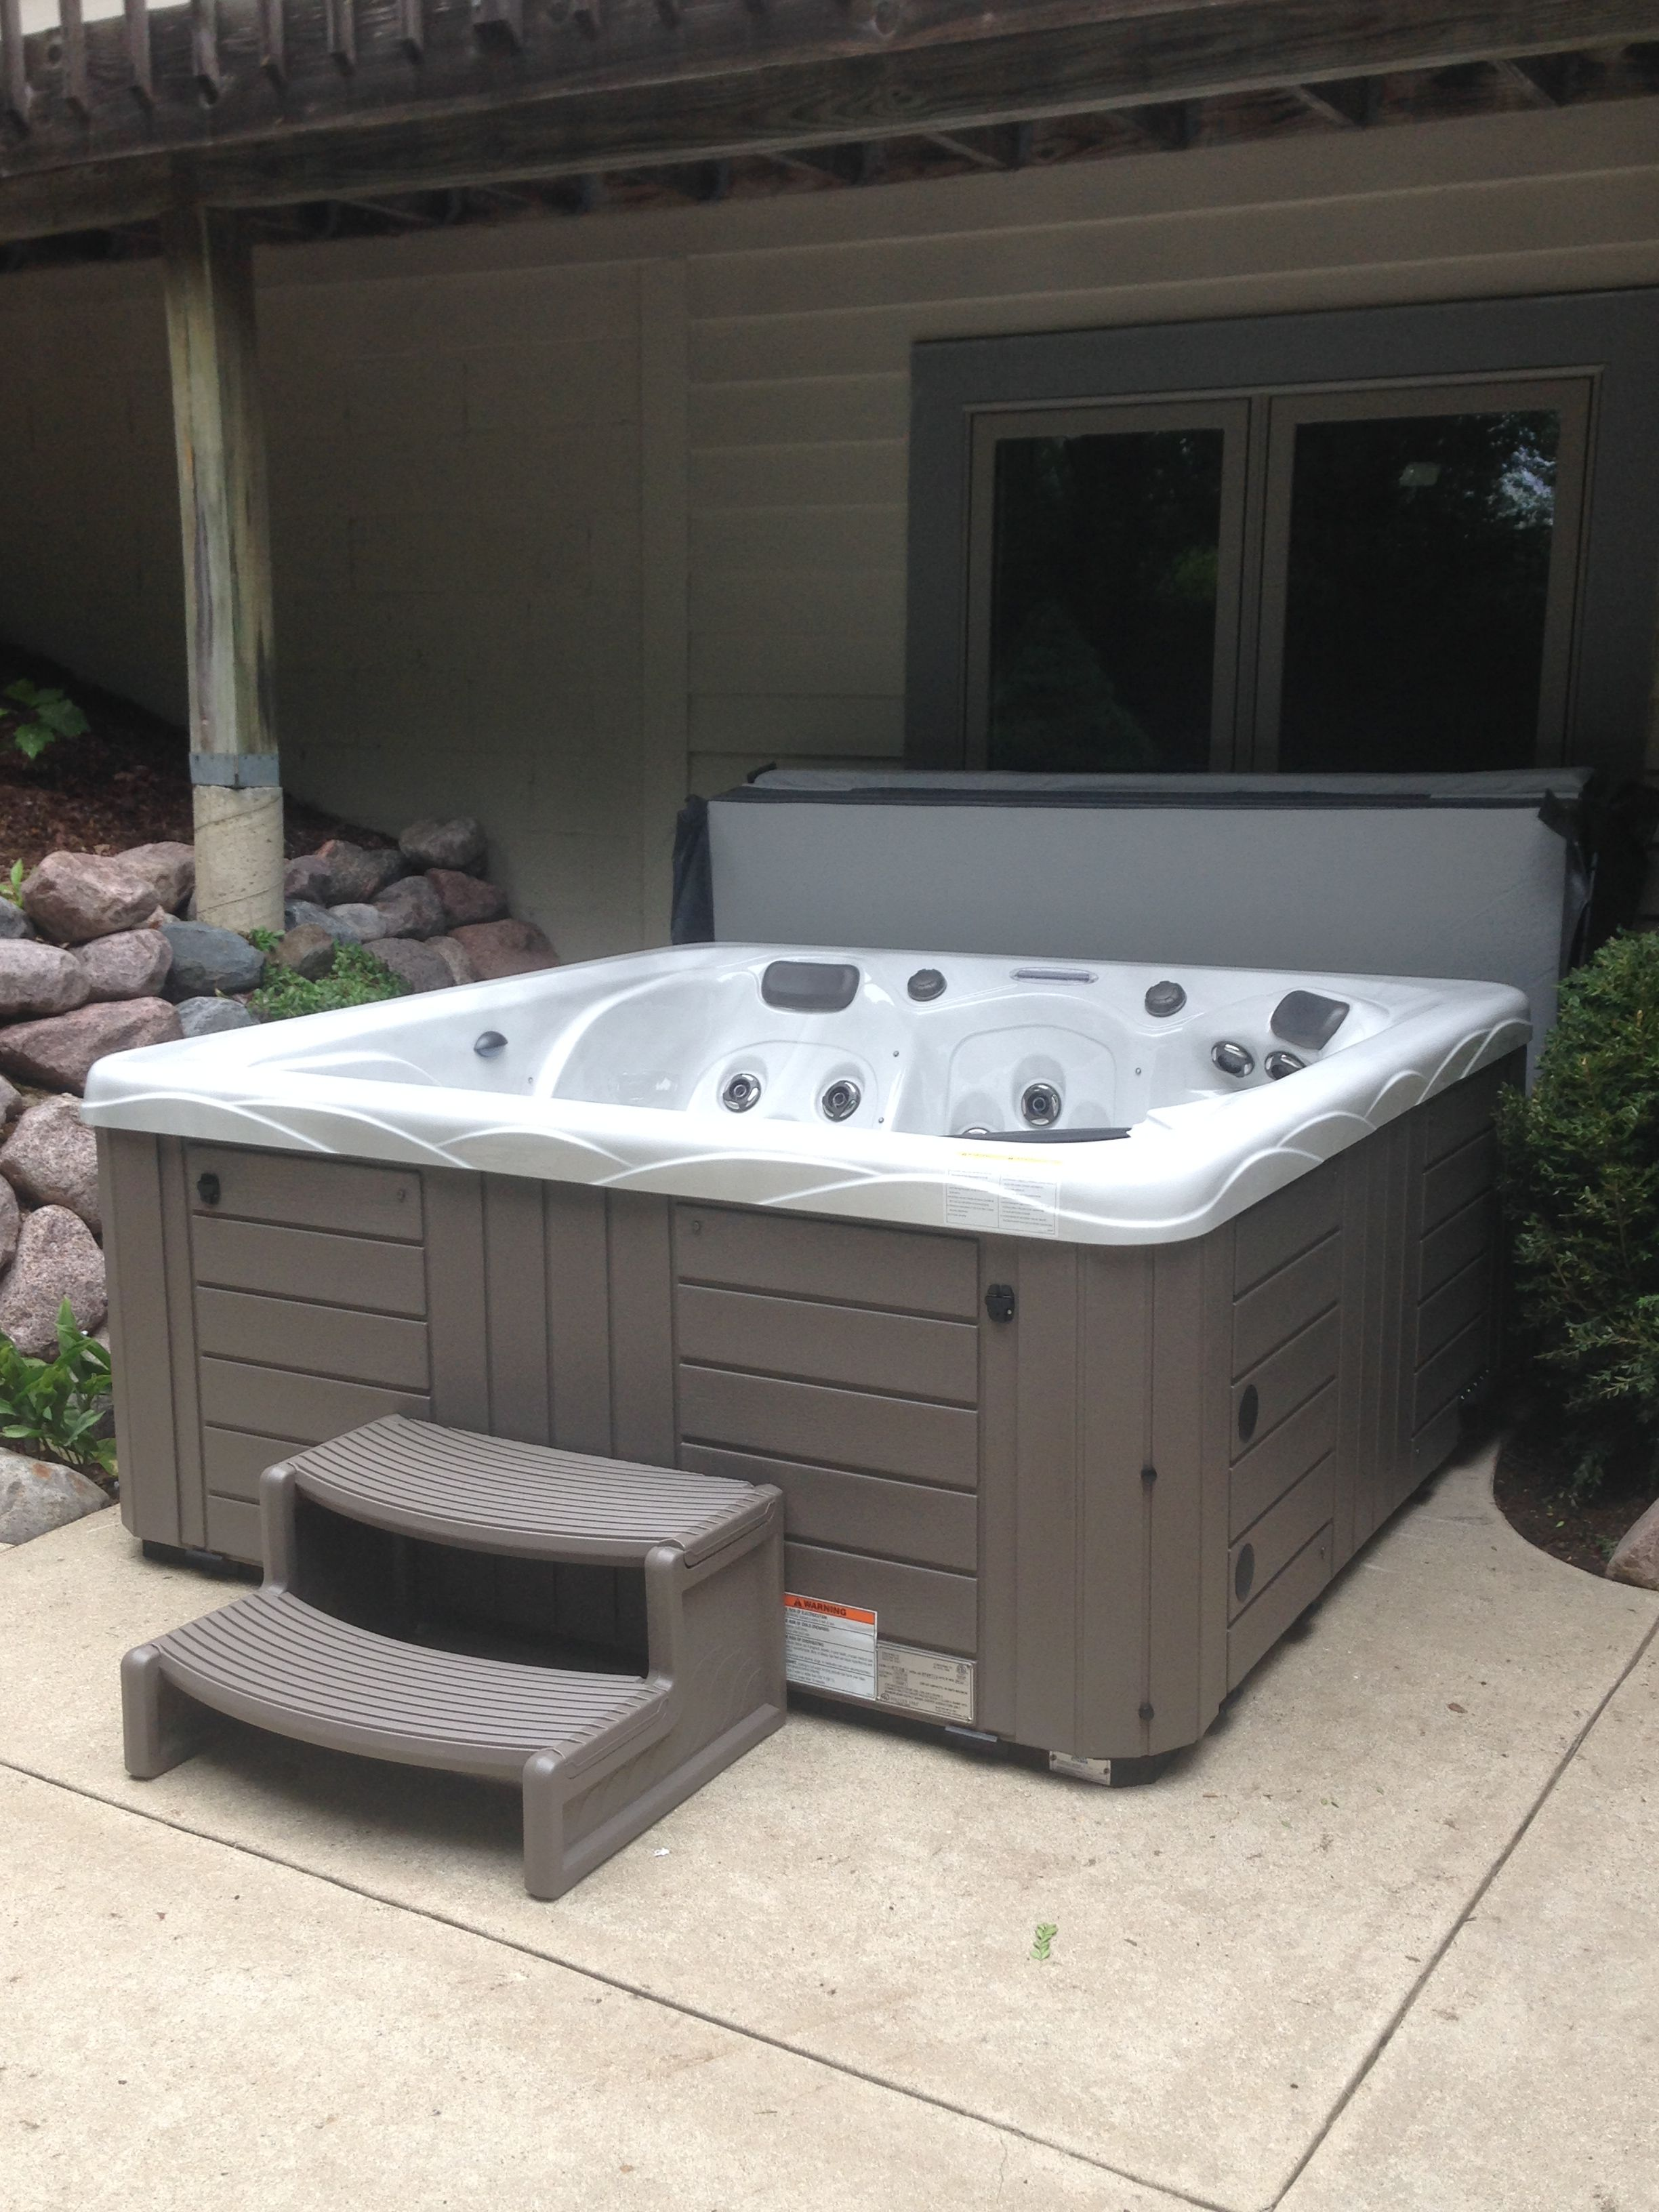 hight resolution of here is a master spas twilight series installed on a concrete slab under the deck